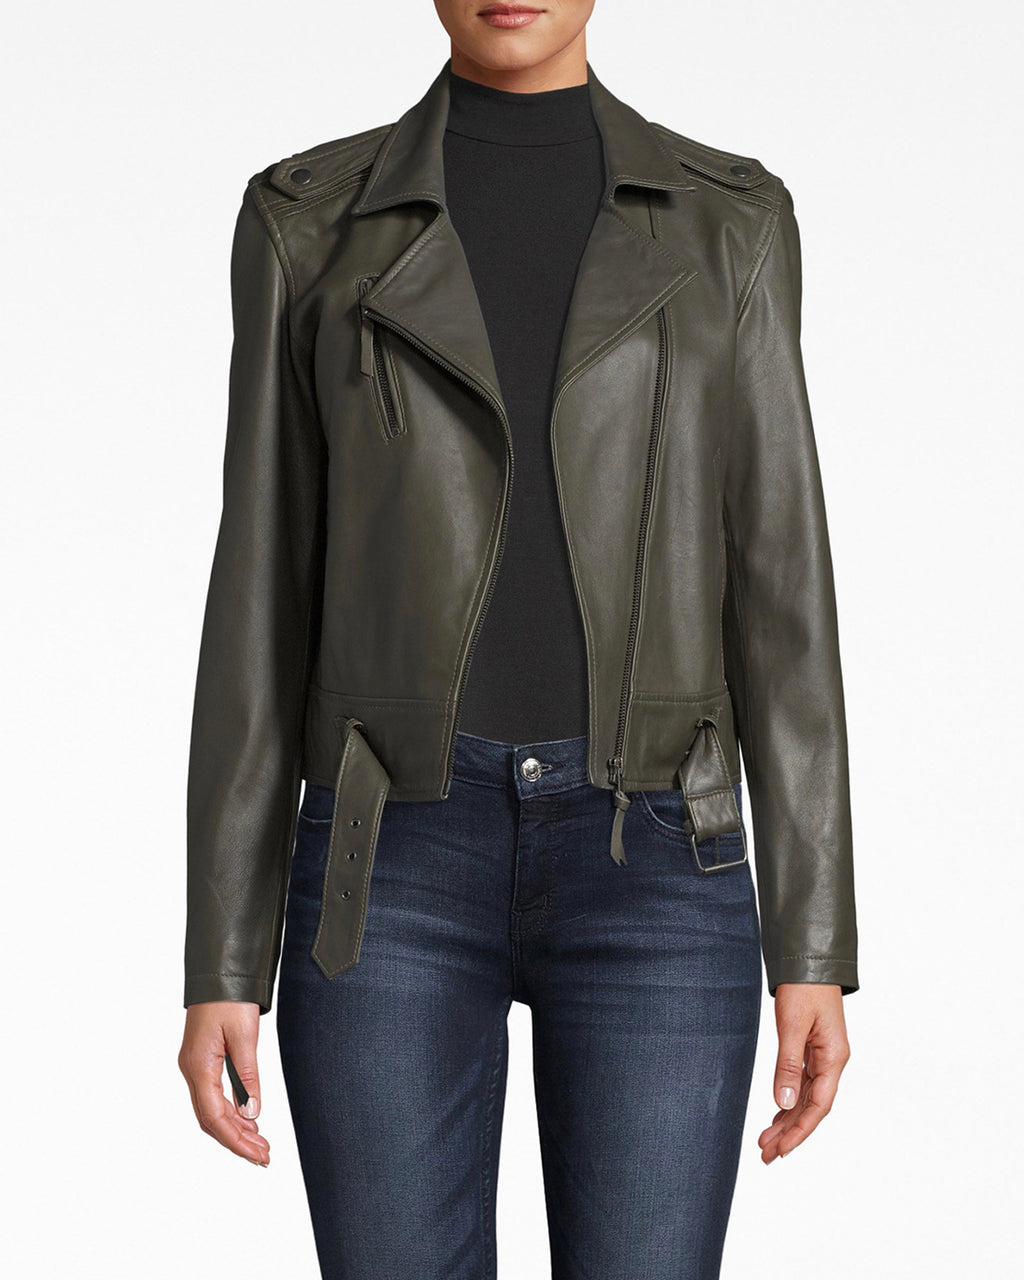 CL10036 - LEATHER MOTO JACKET - outerwear - jackets - Ready for leather jacket season? The tailoring and fit of this moto jacket create a simple and chic silhouette. Pair over anything.